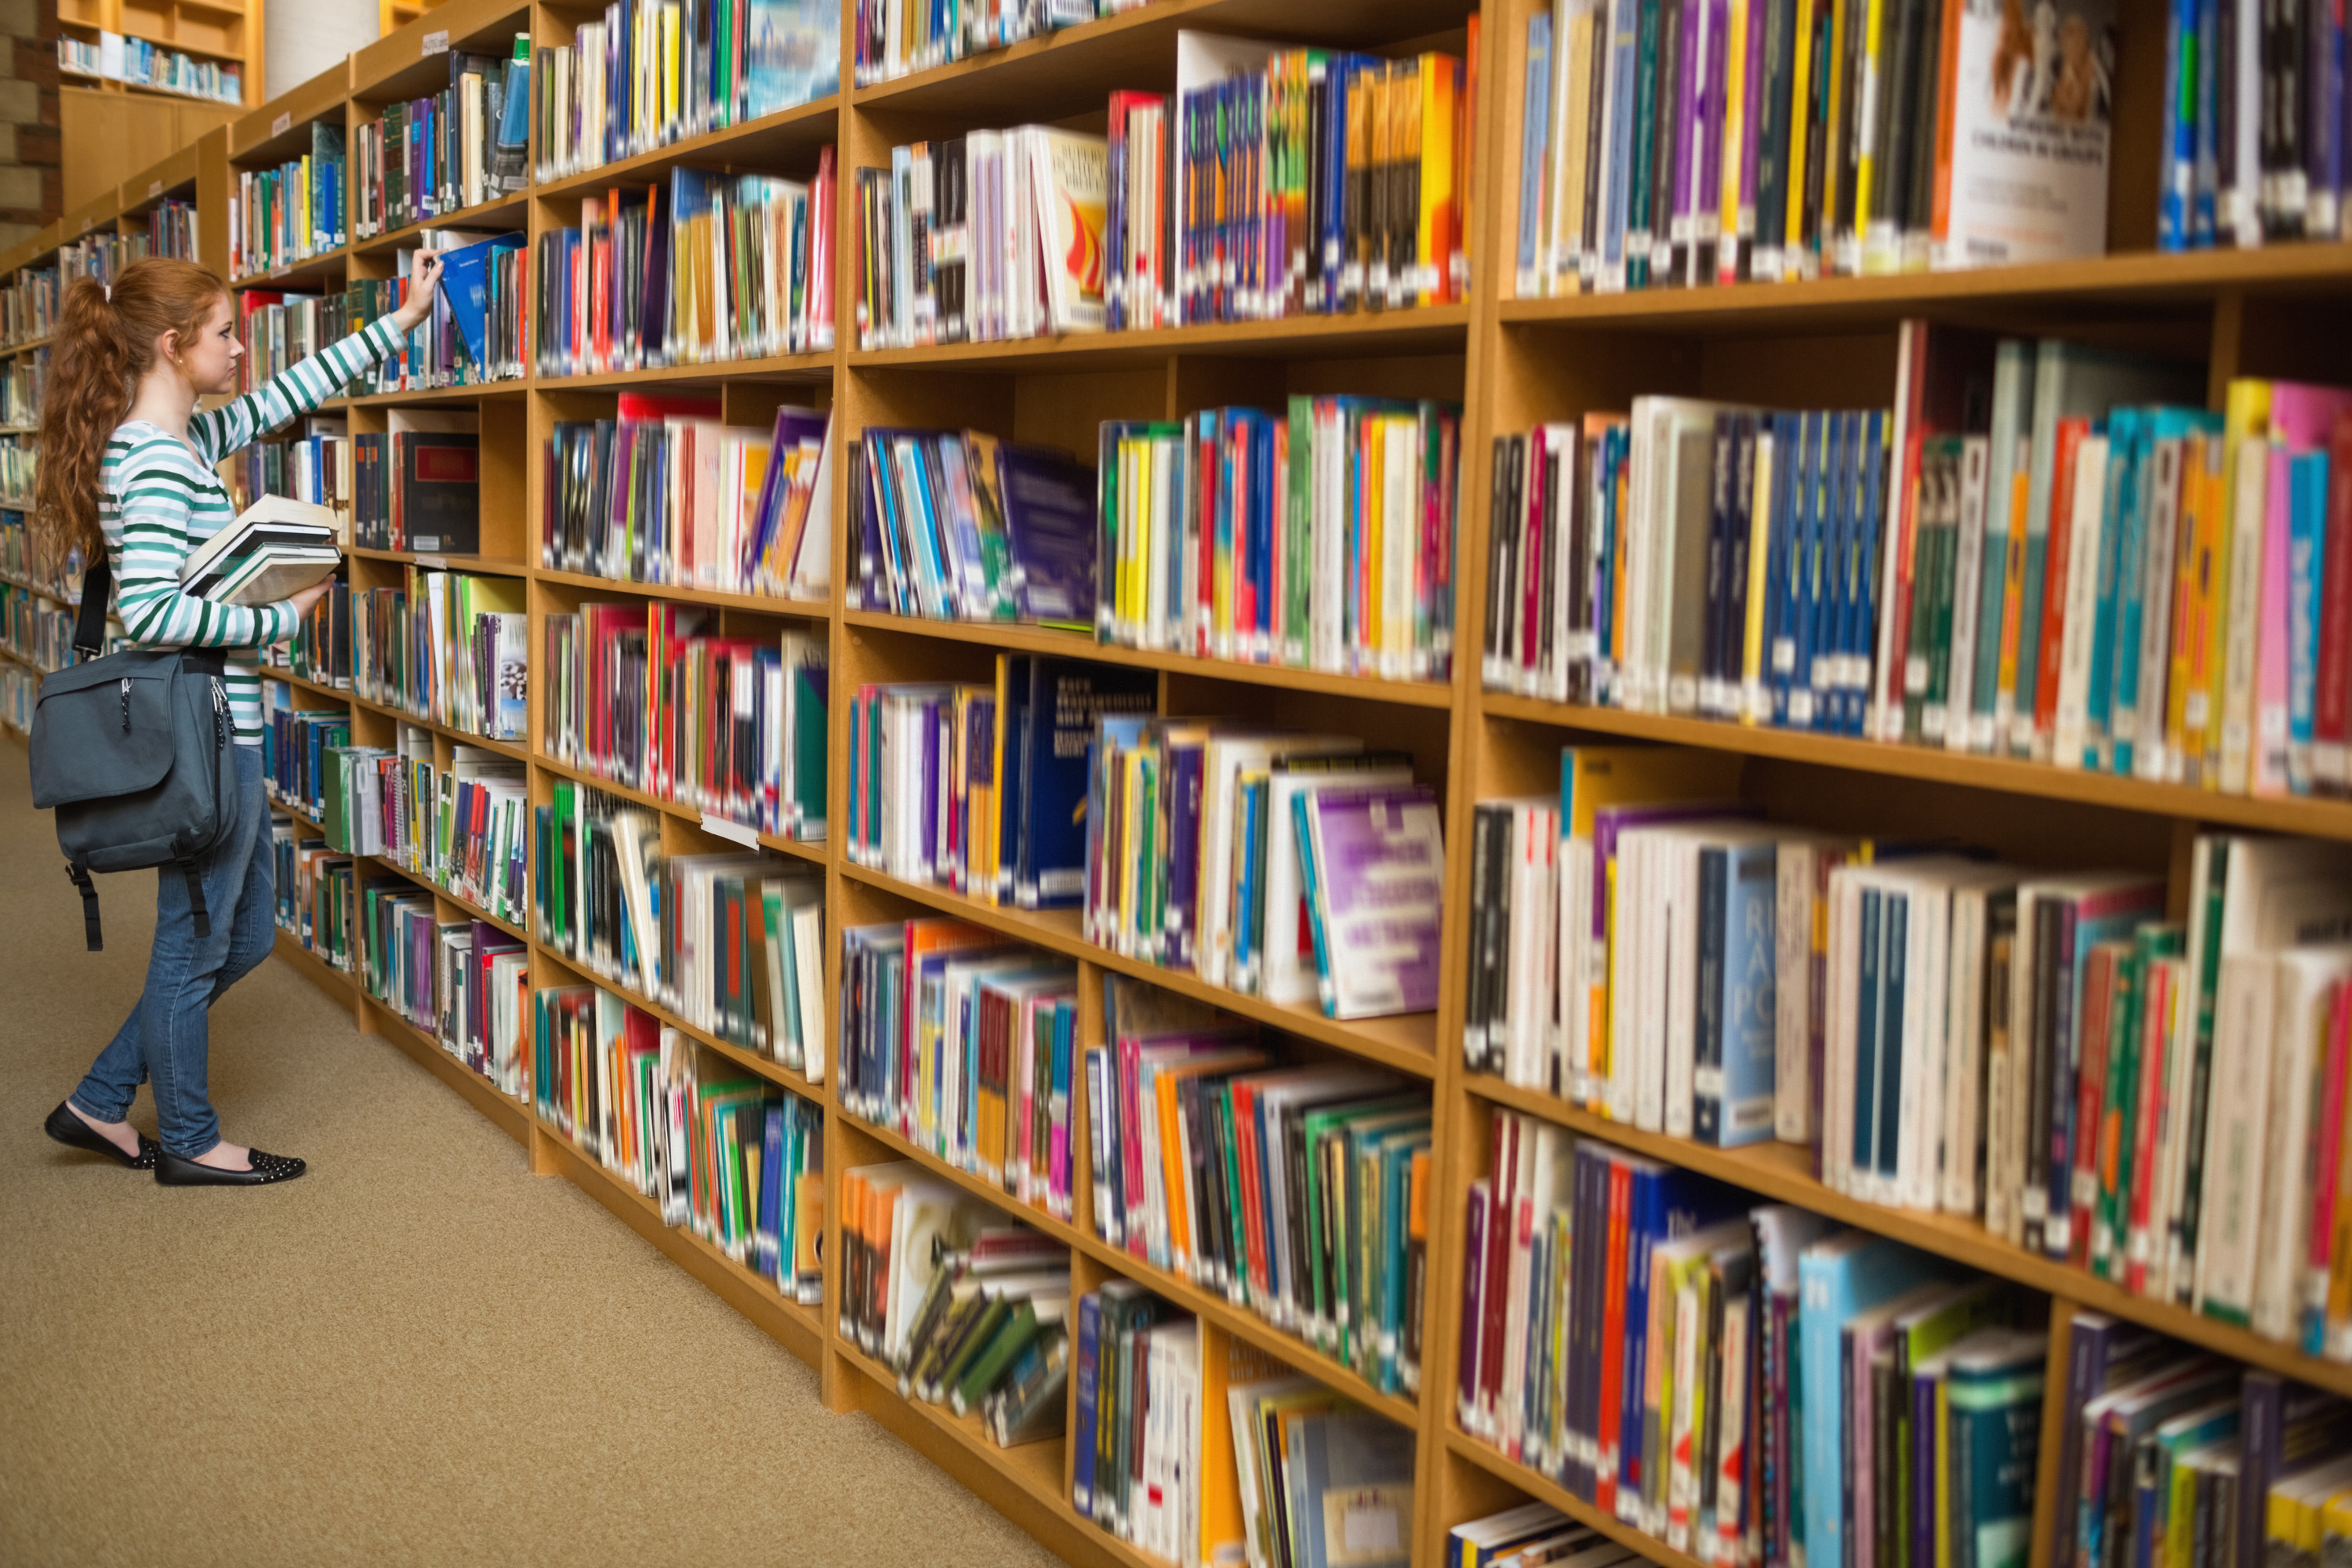 How to Find Books and E